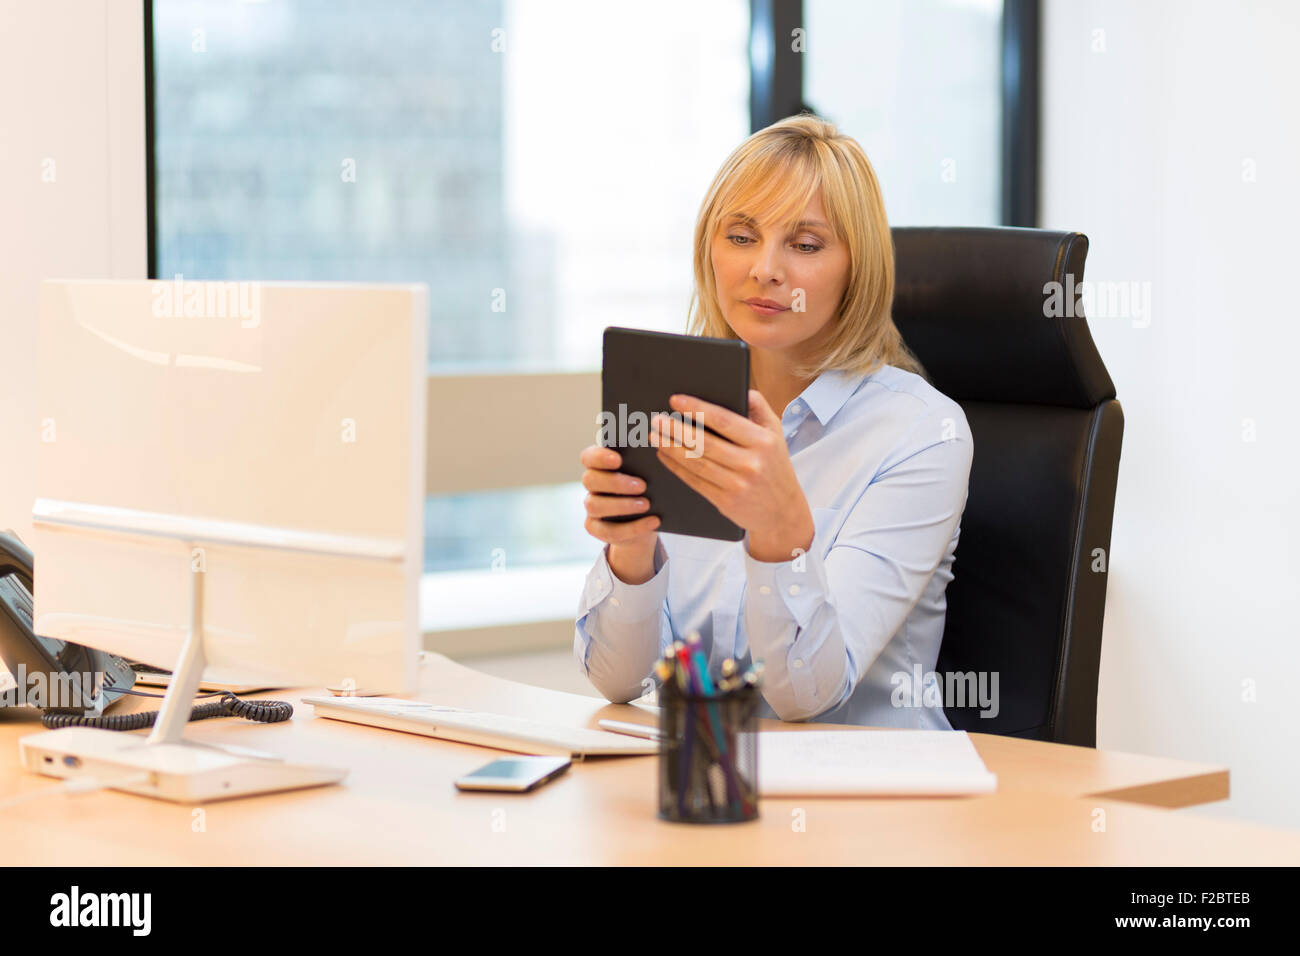 Middle aged business woman using tablet pc at office - Stock Image